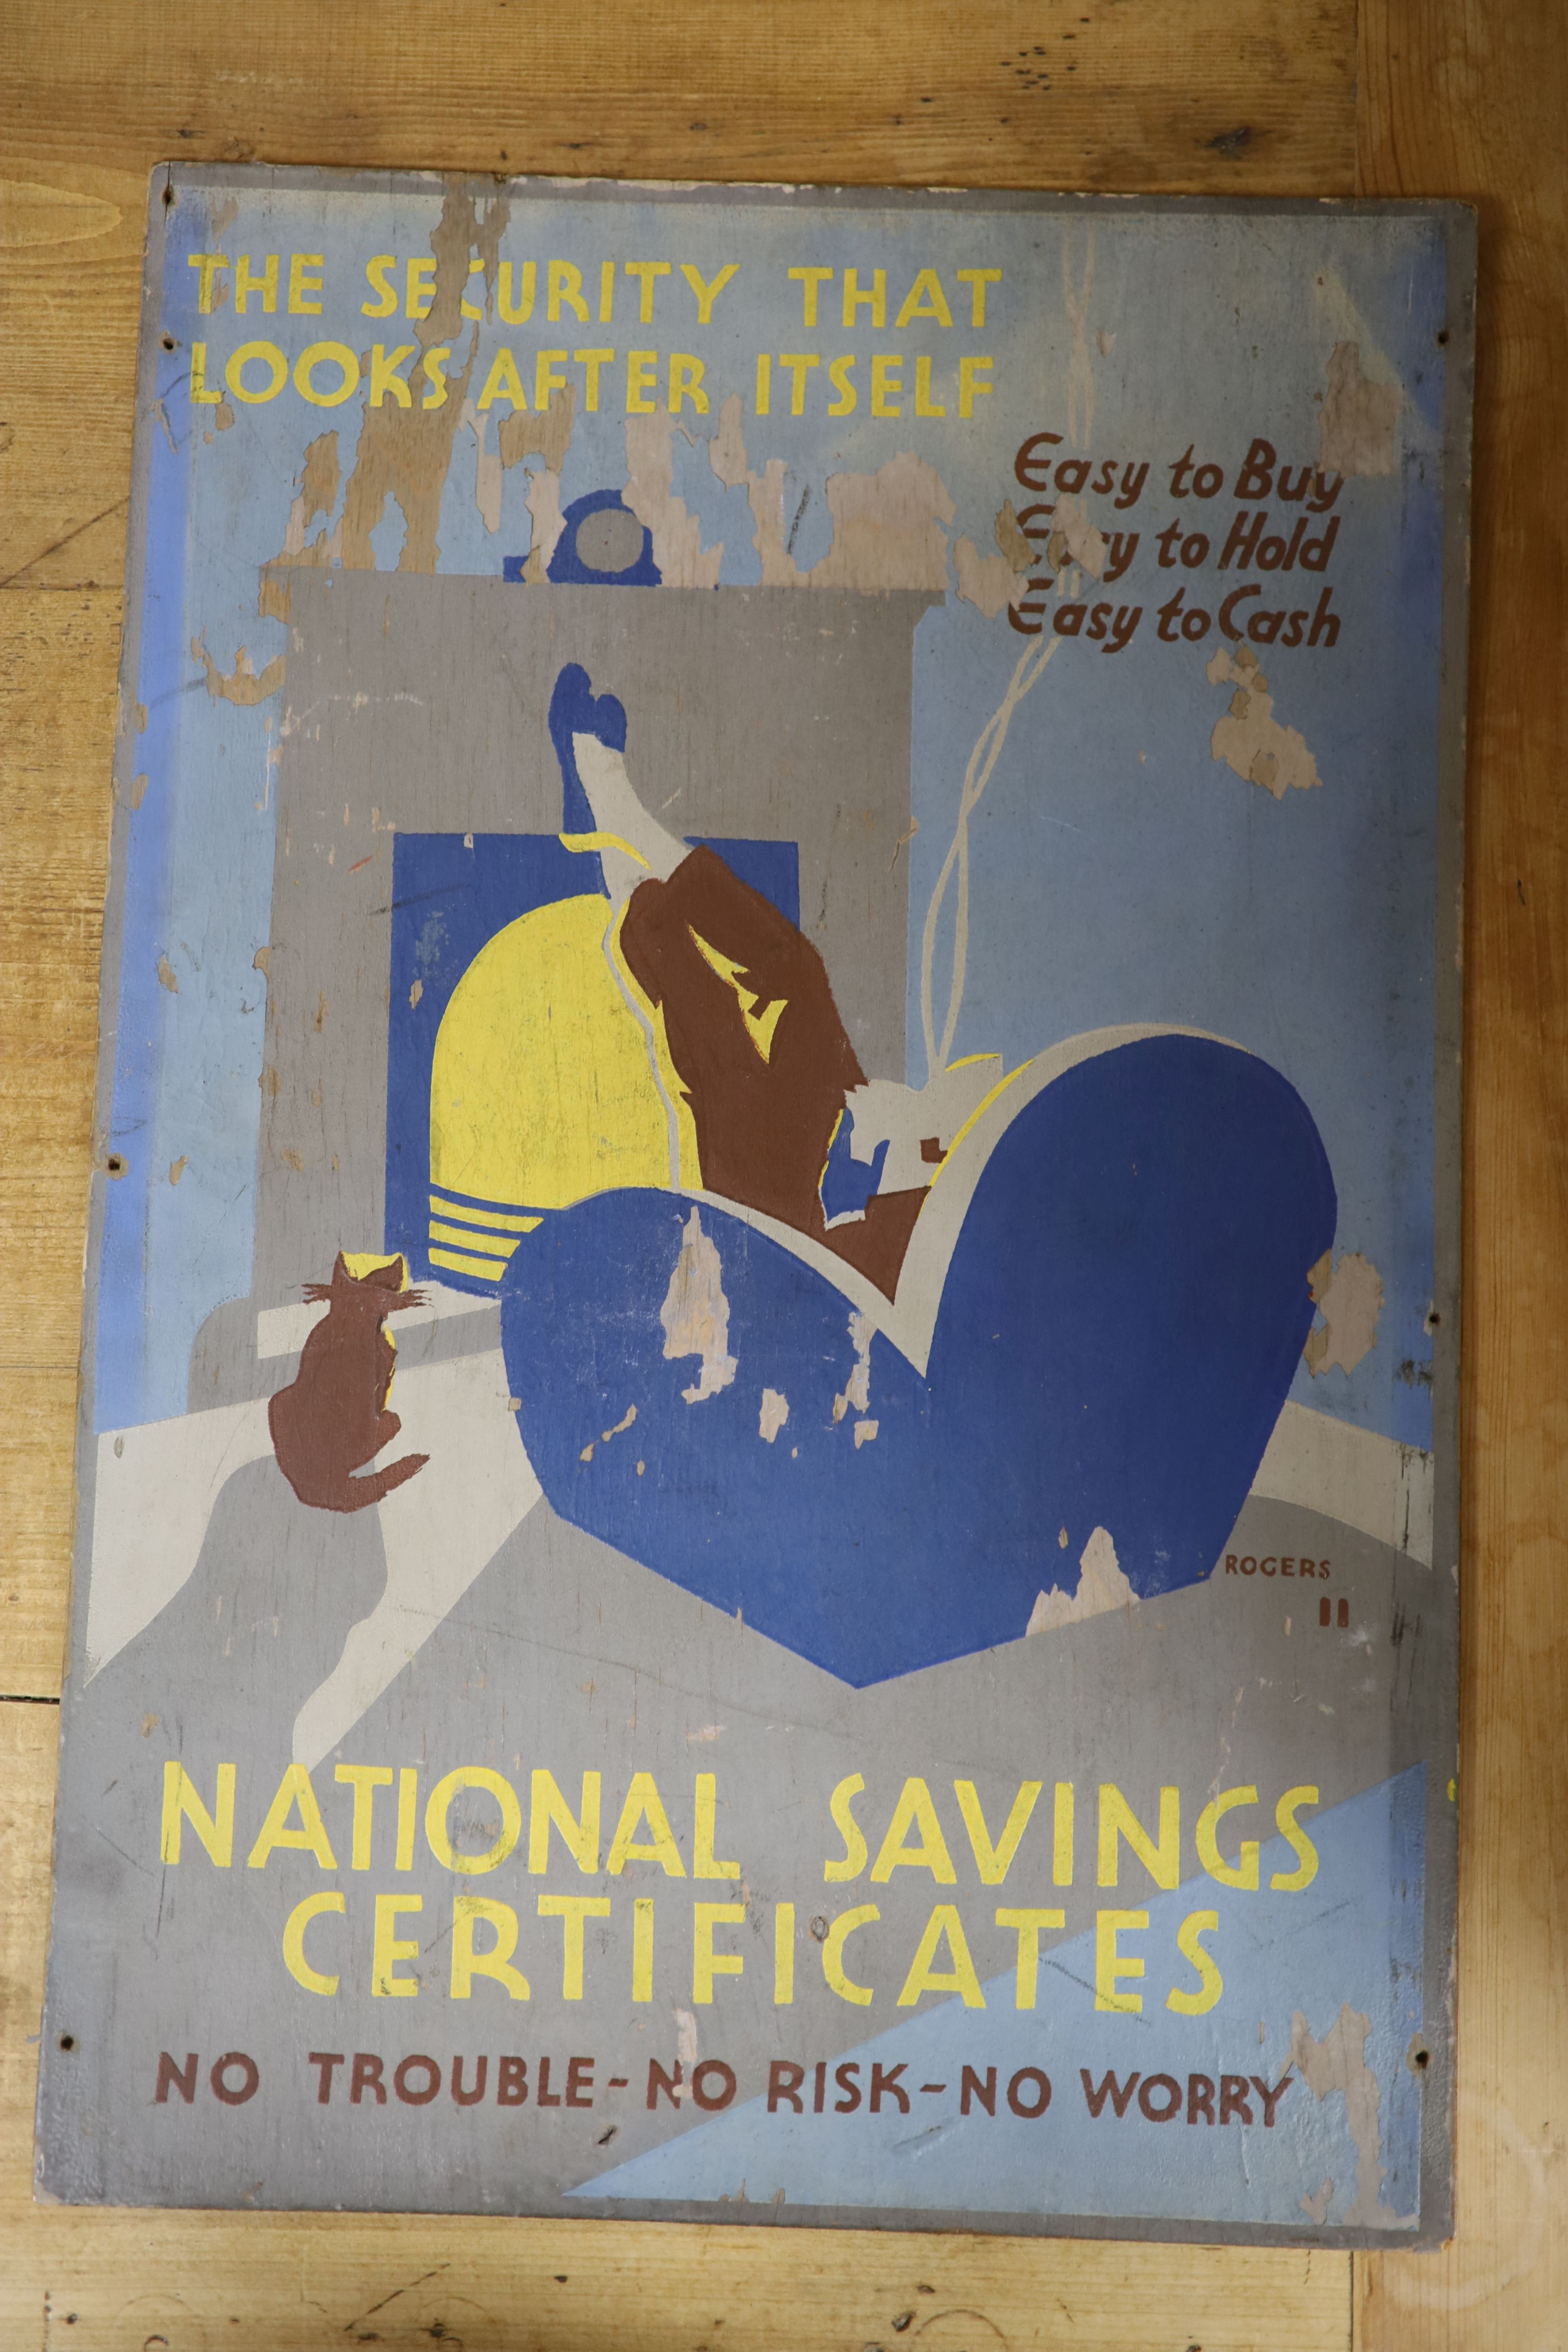 Rogers, oil on wooden panel, original artwork for National Savings Certificates poster, signed, 46 - Image 2 of 3